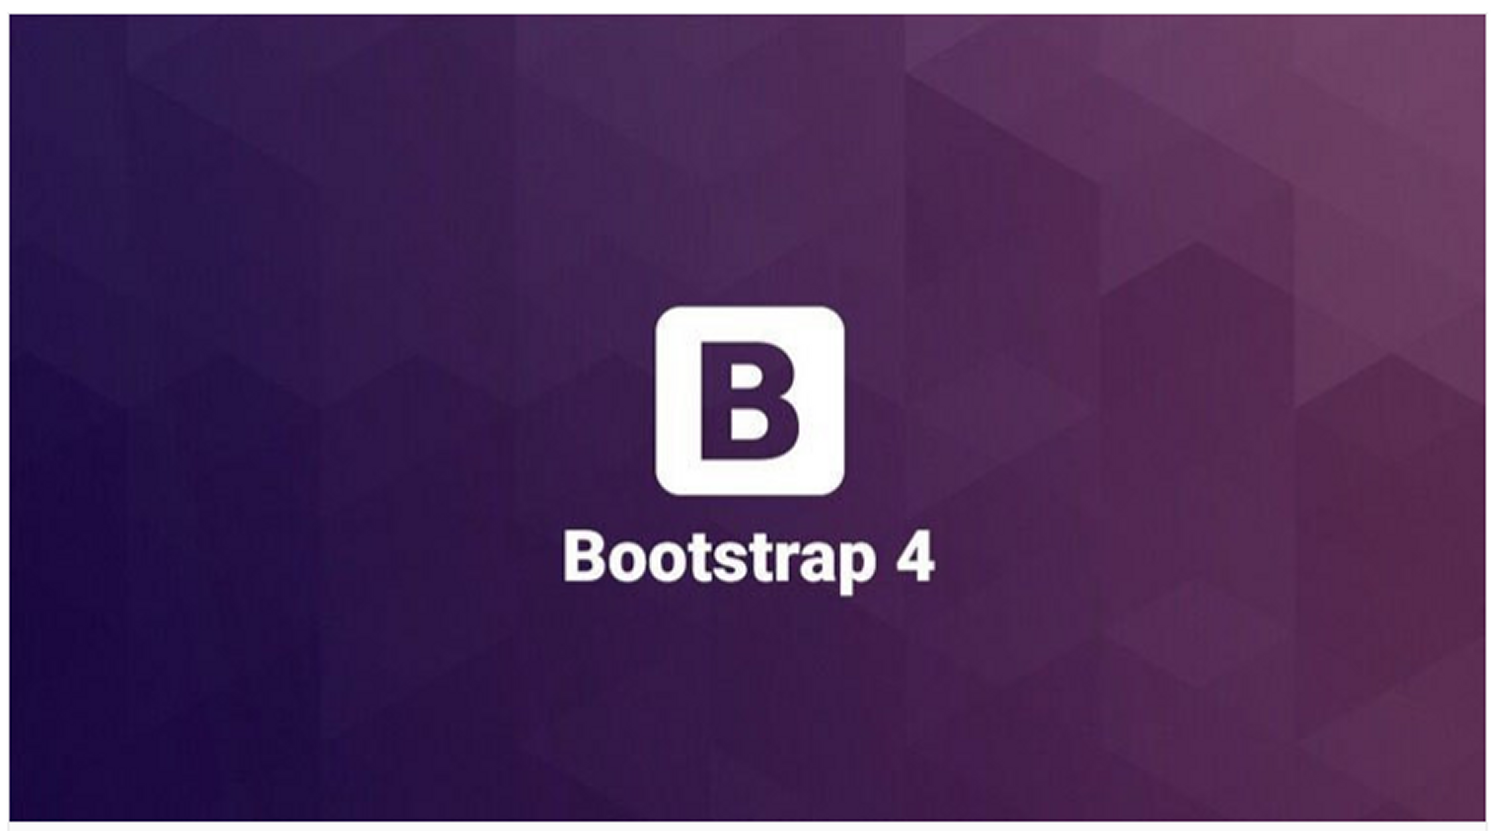 bootstrap 4 4 Joomla 4 Review: The Most Improved Joomla Version